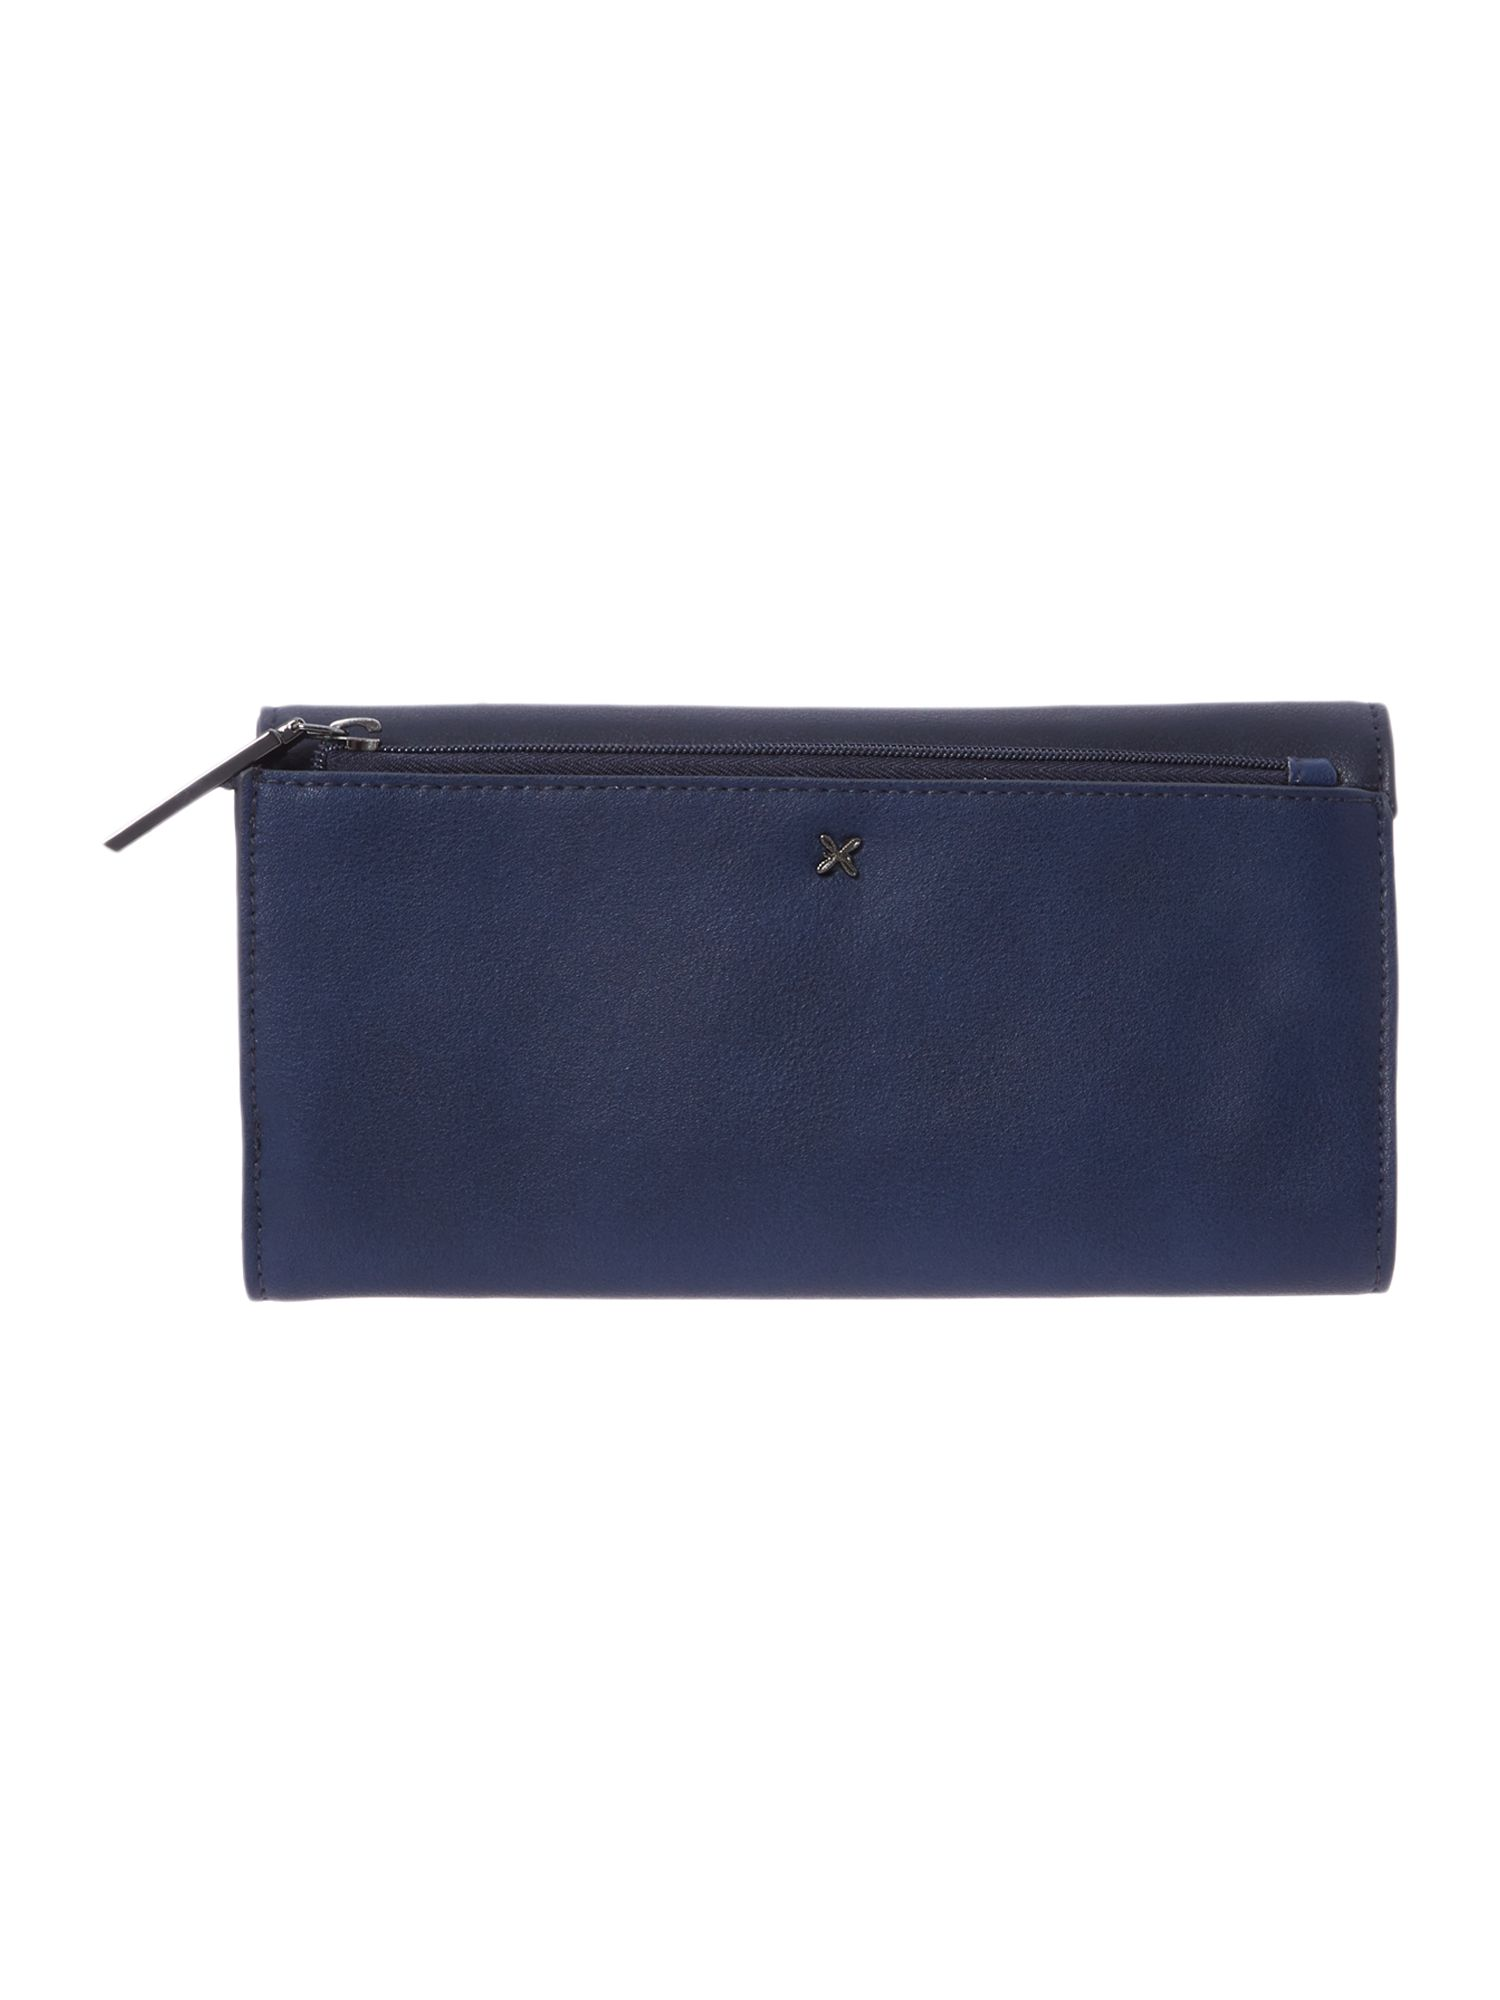 Sadie navy large flapover purse